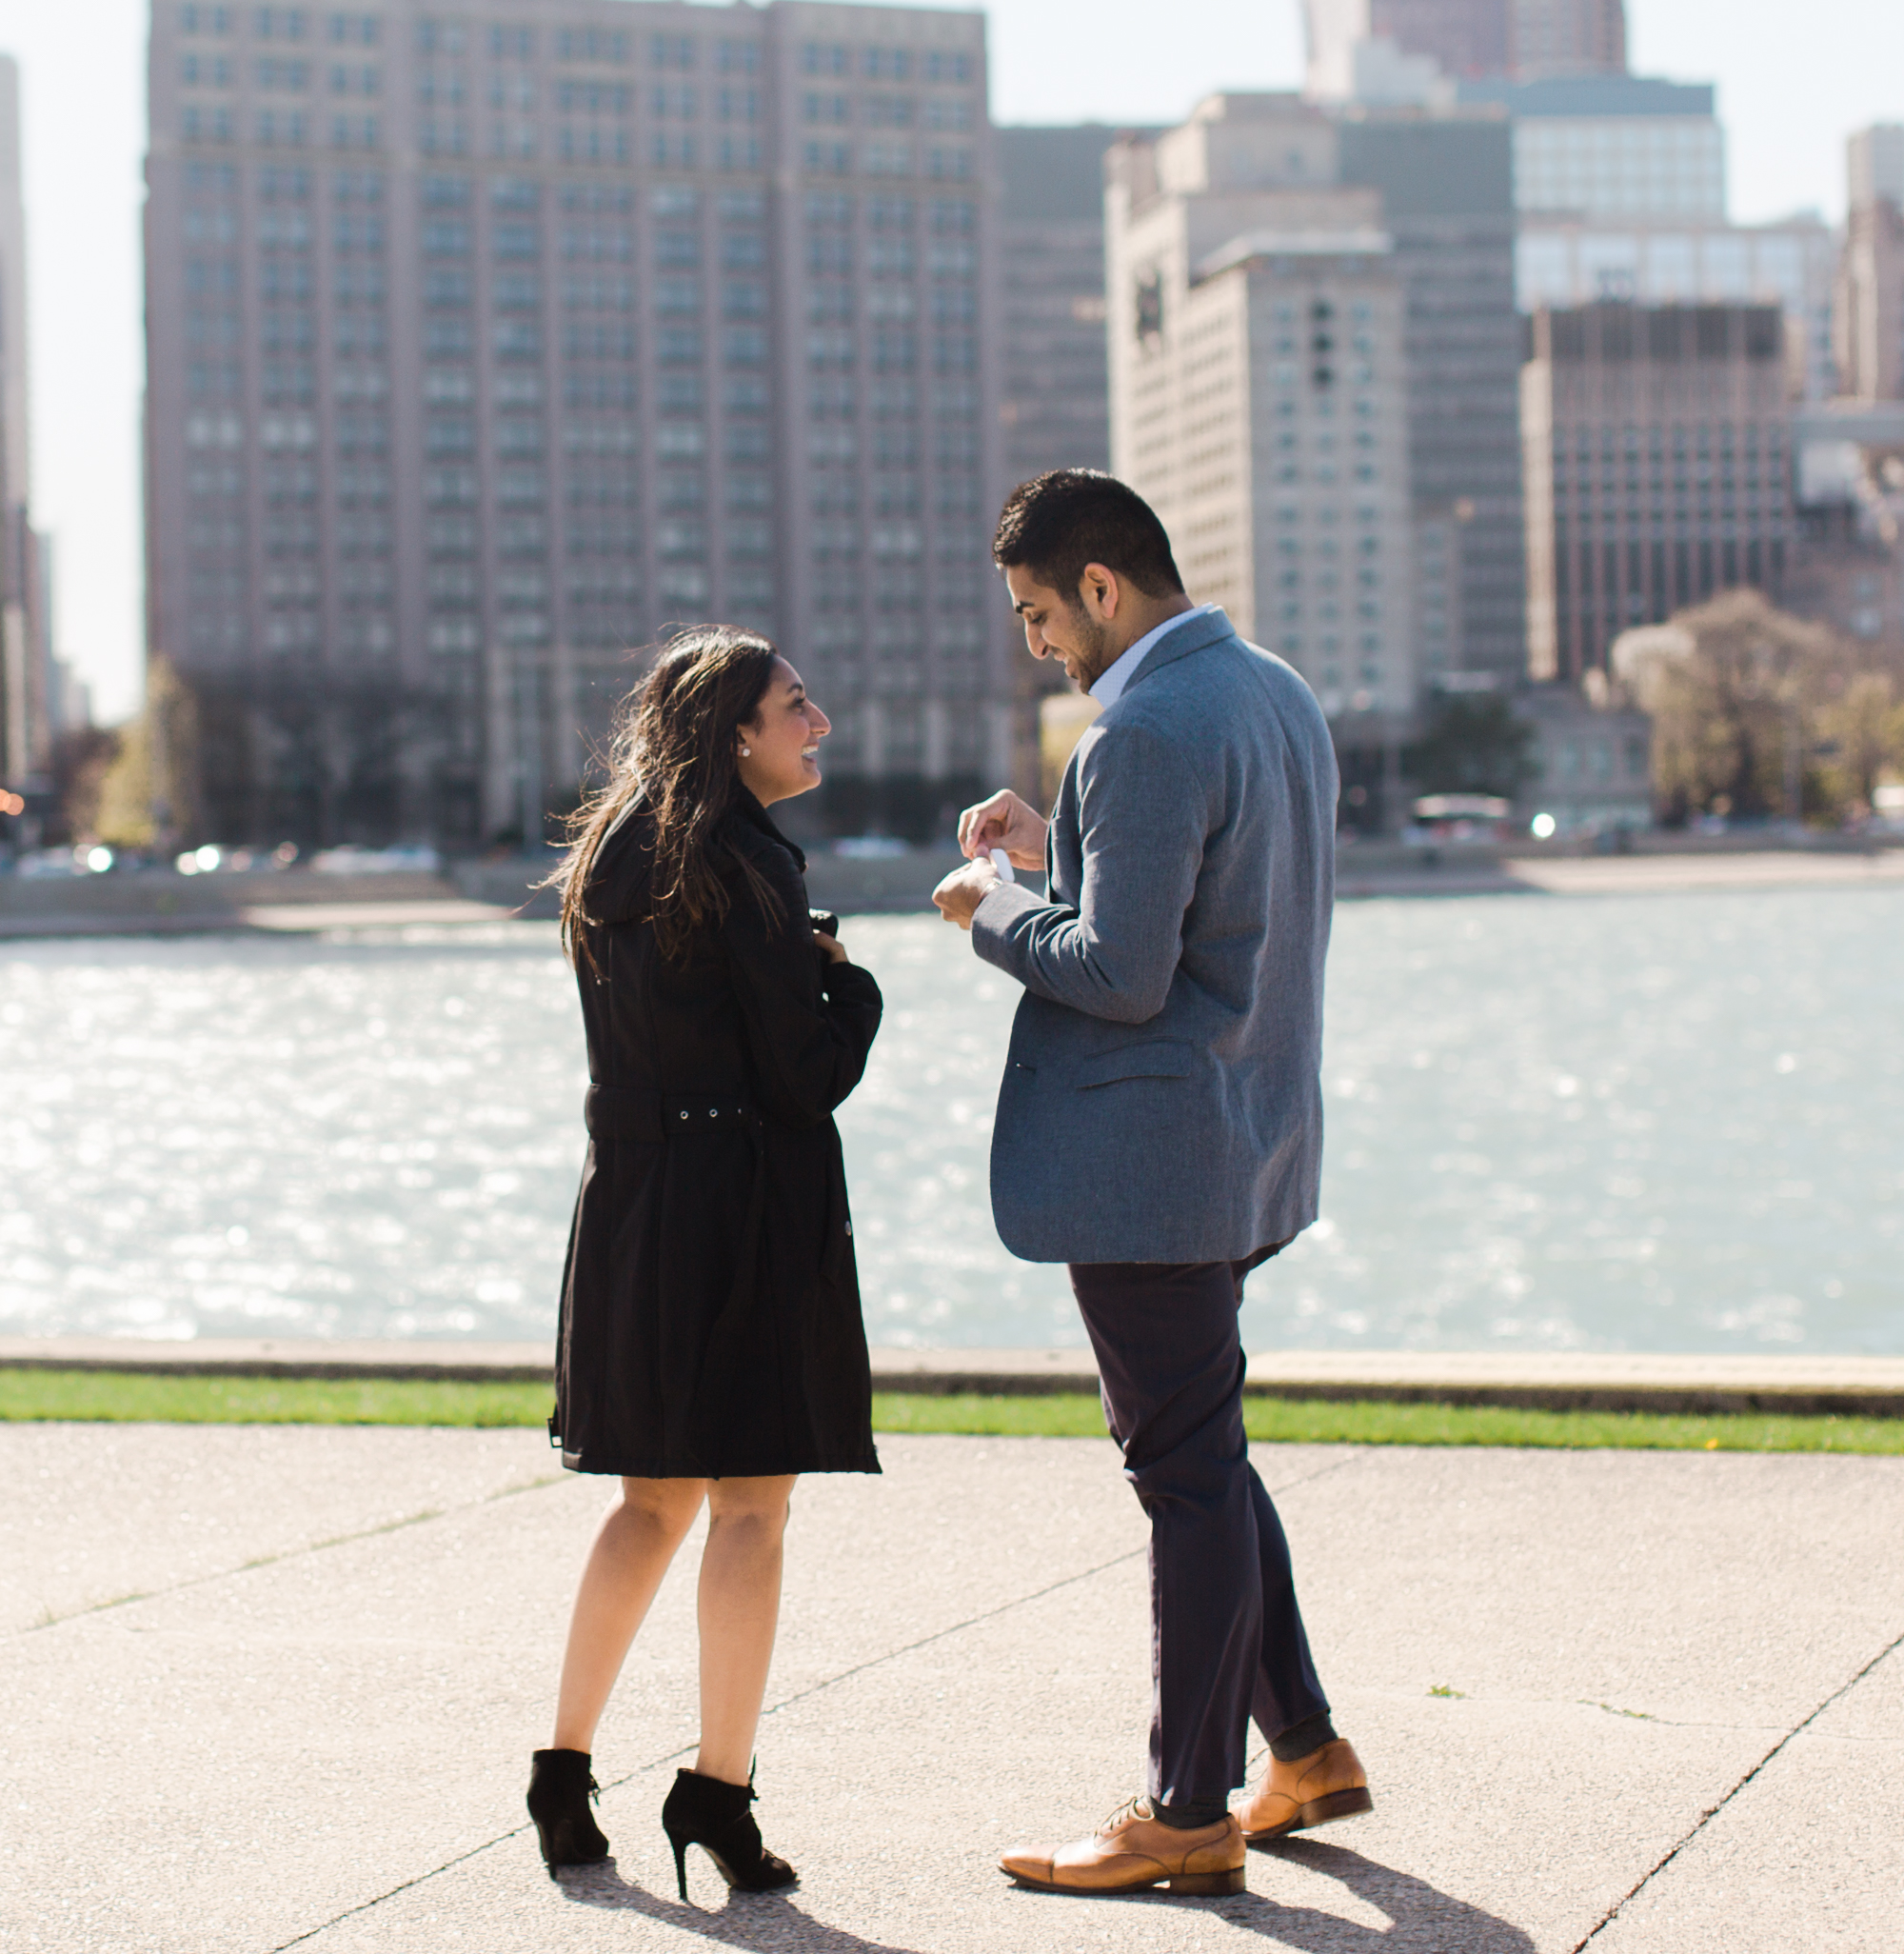 Bonphotage Chicago Proposal Photography